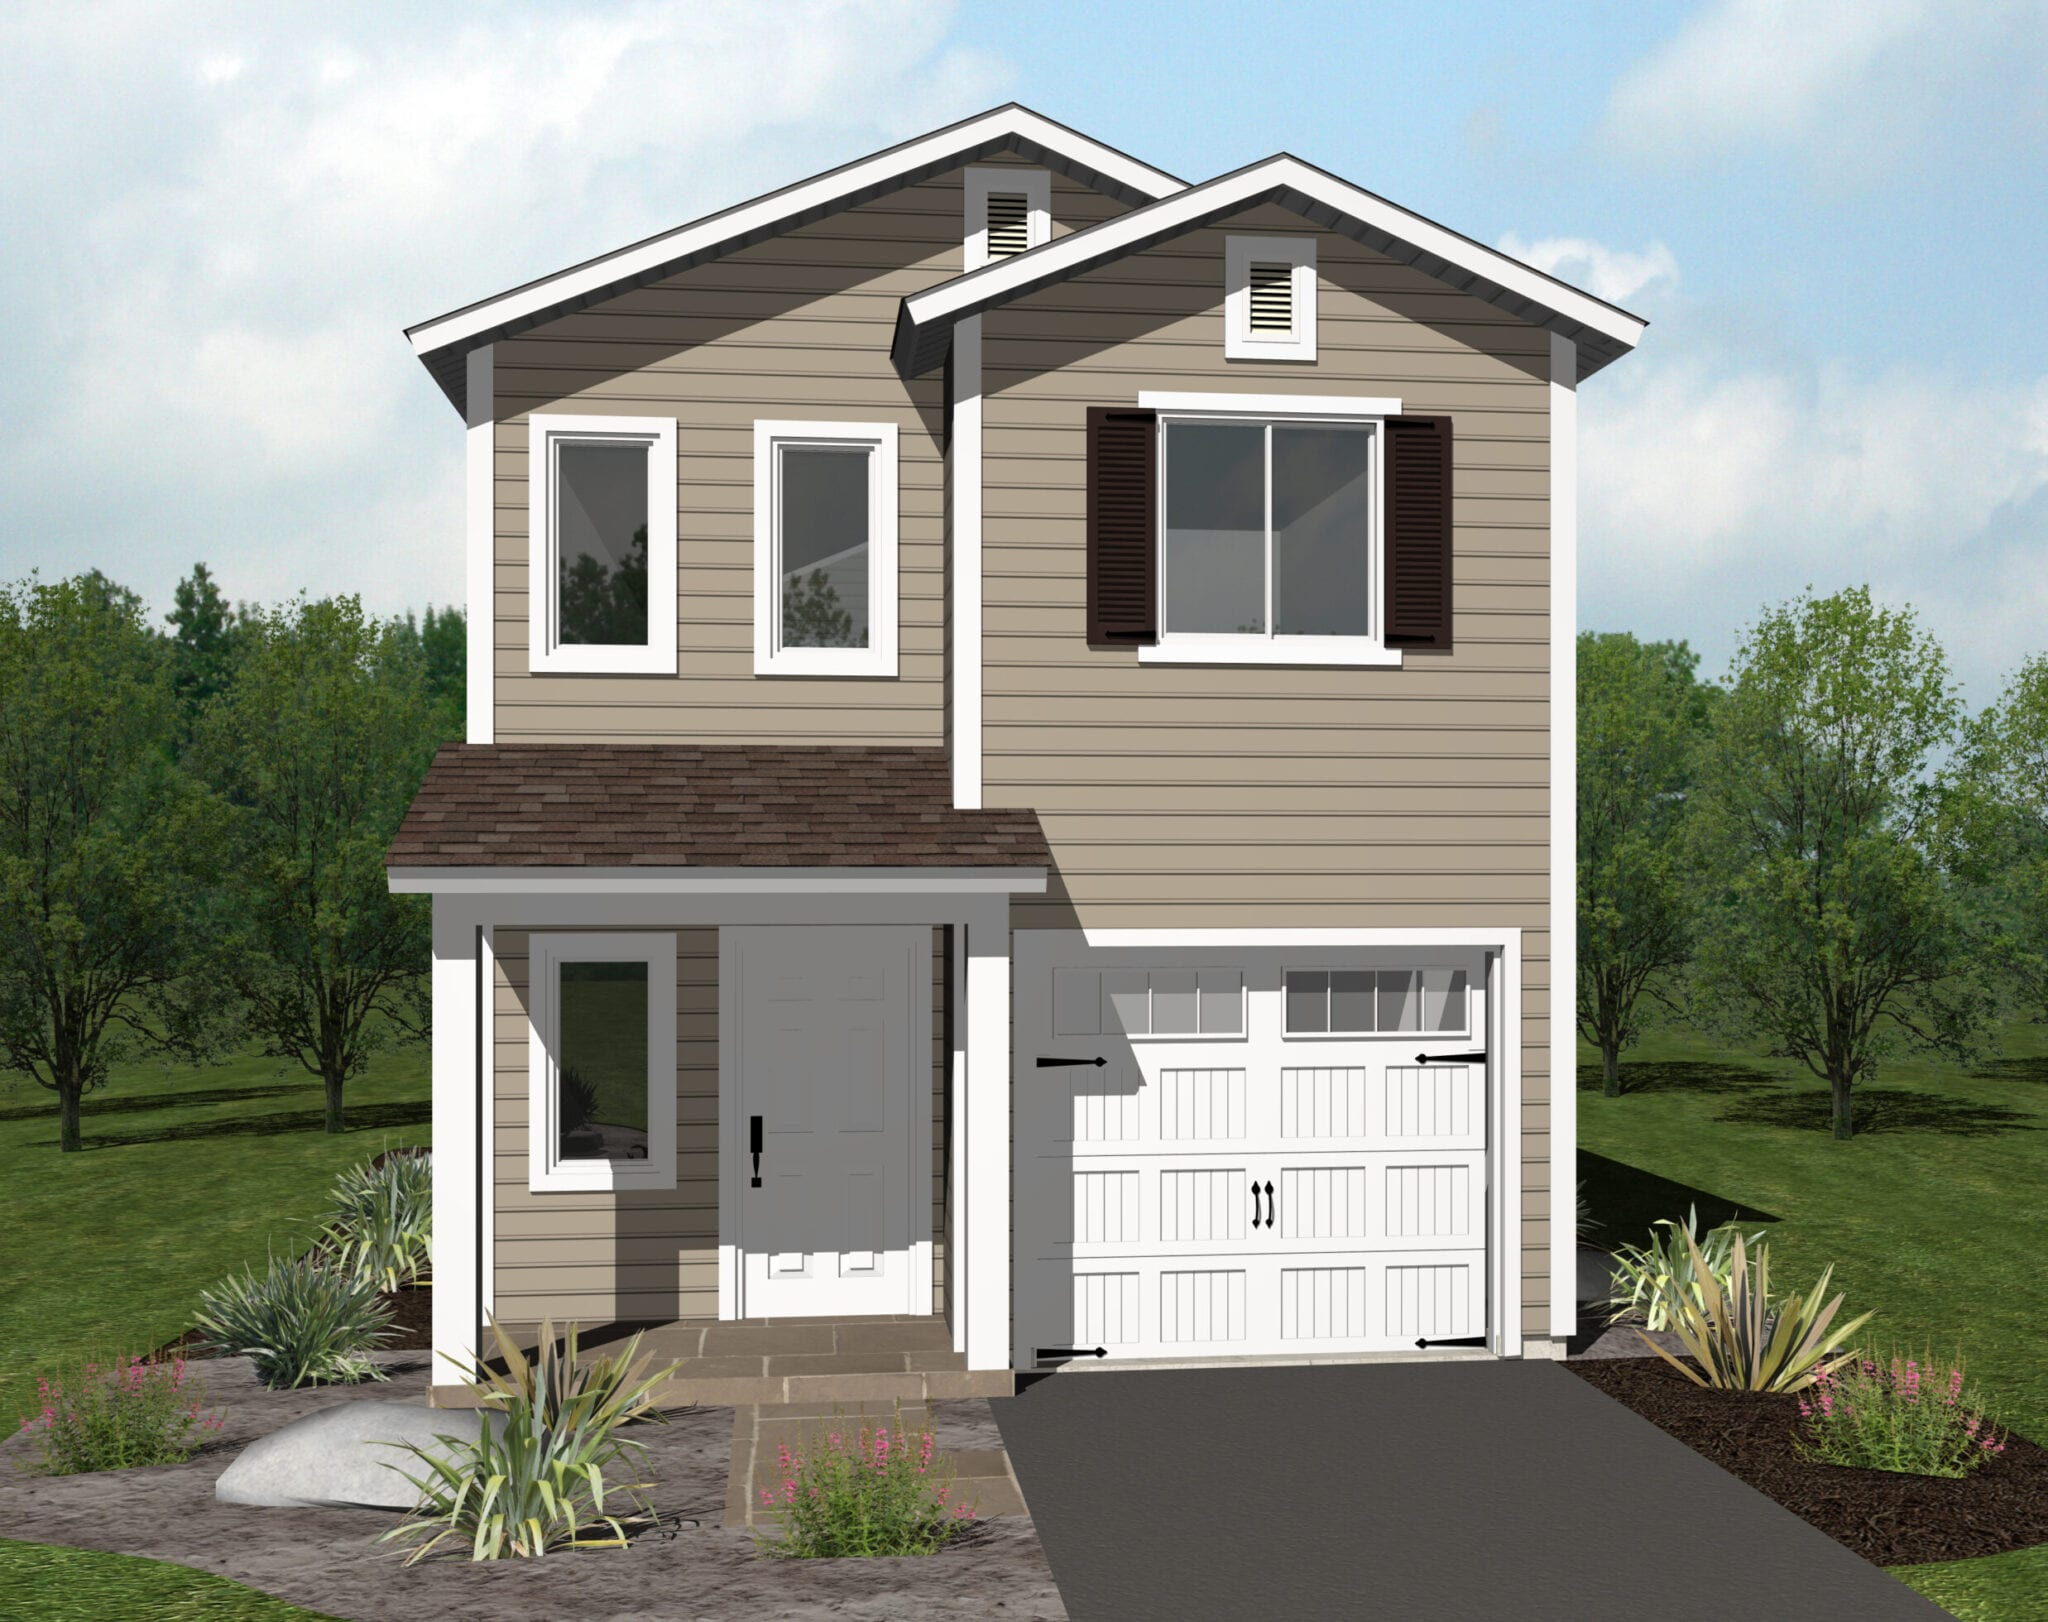 FRONT RENDERING-1609 California Ave